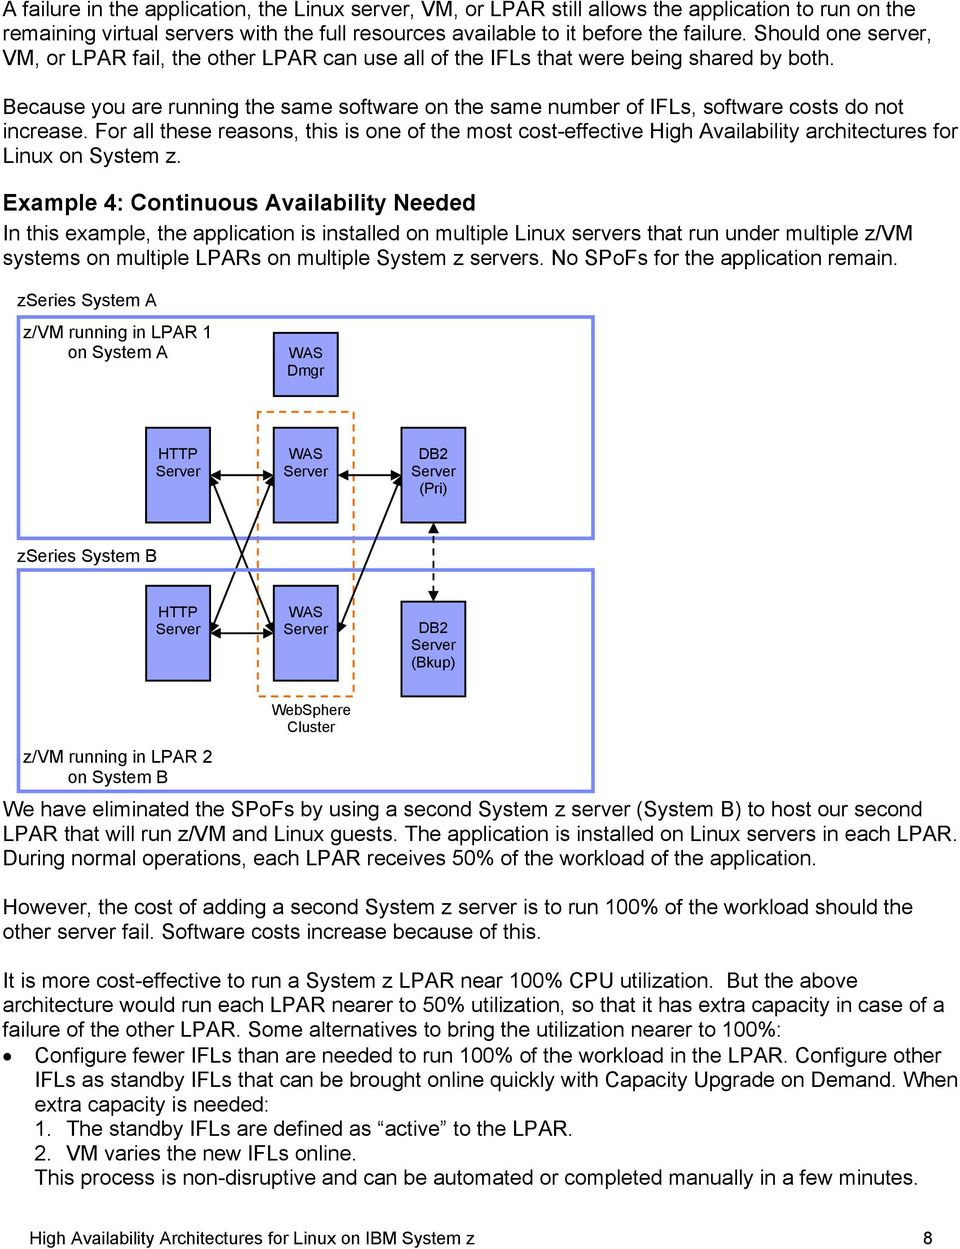 For ths rasons, this is on of th most cost-ffctiv High Availability architcturs for Linux on Systm z.